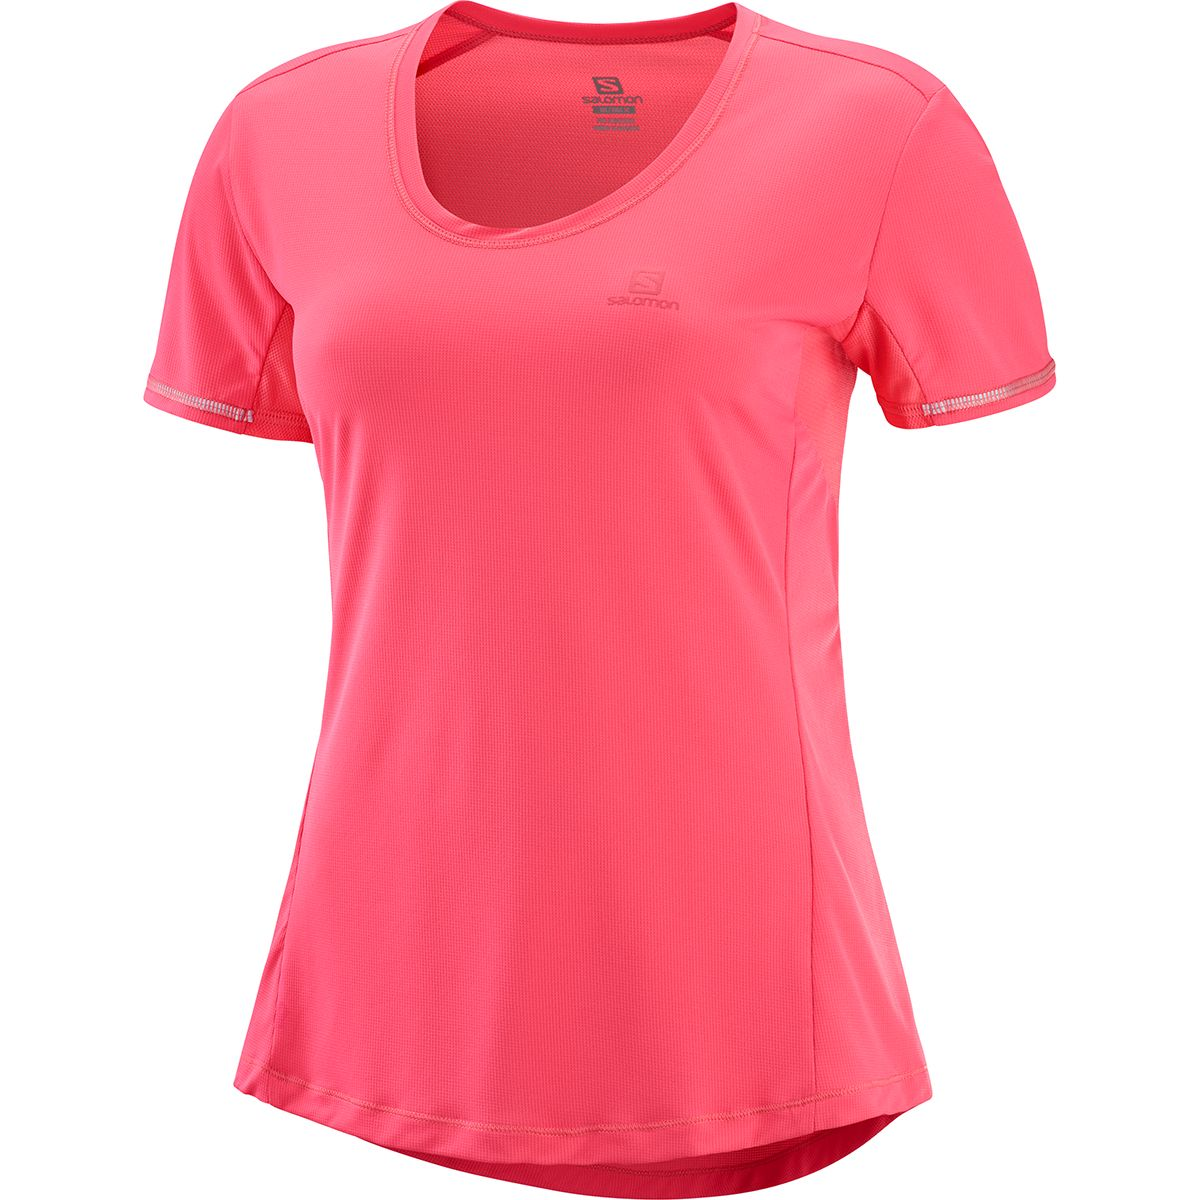 Salomon Damen Agile T-Shirt (Größe M, Rot) | T-Shirts Funktion > Damen